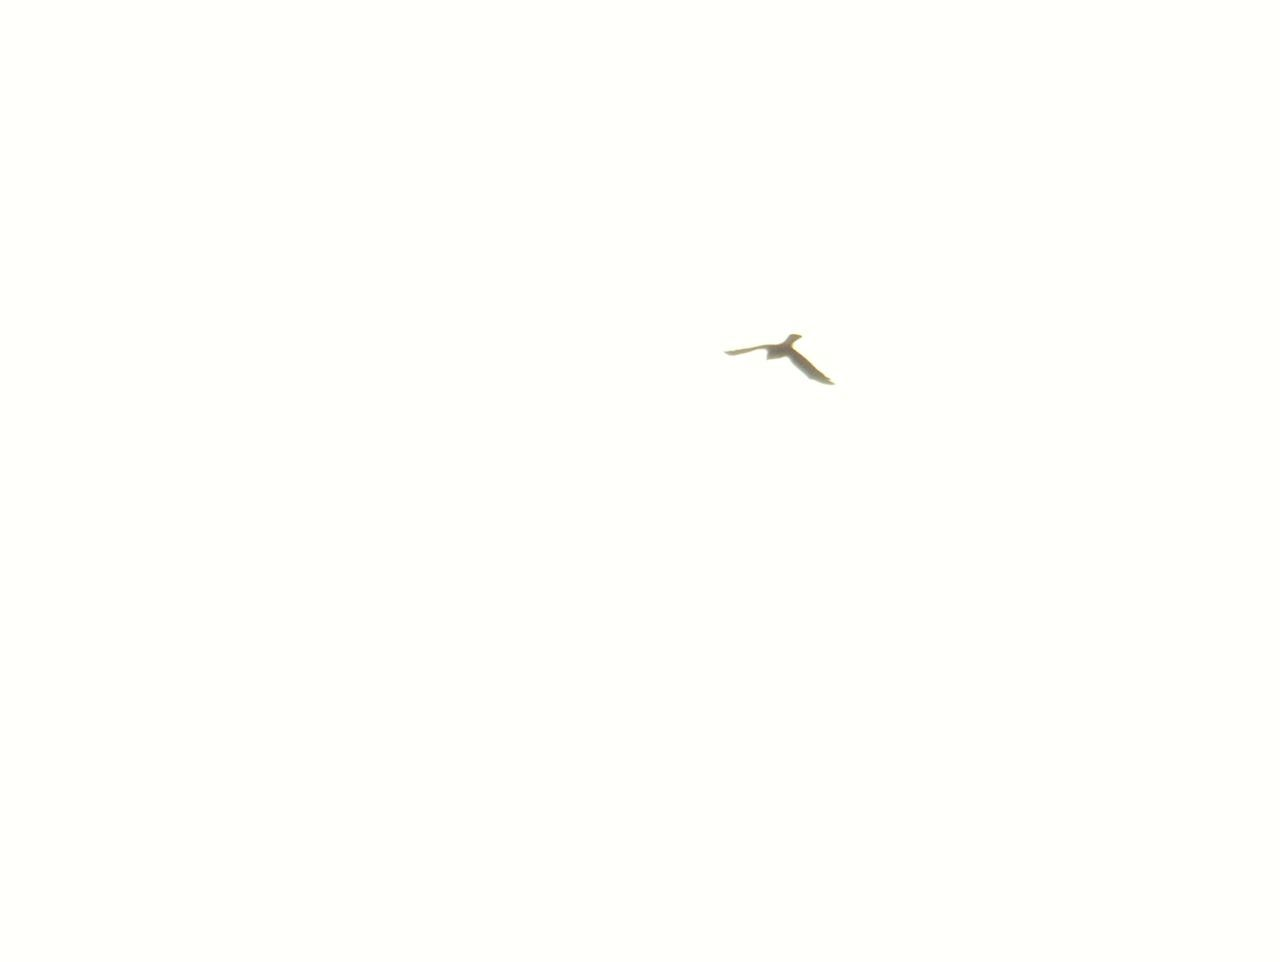 flying, low angle view, no people, airplane, clear sky, animals in the wild, animal themes, day, outdoors, nature, bird